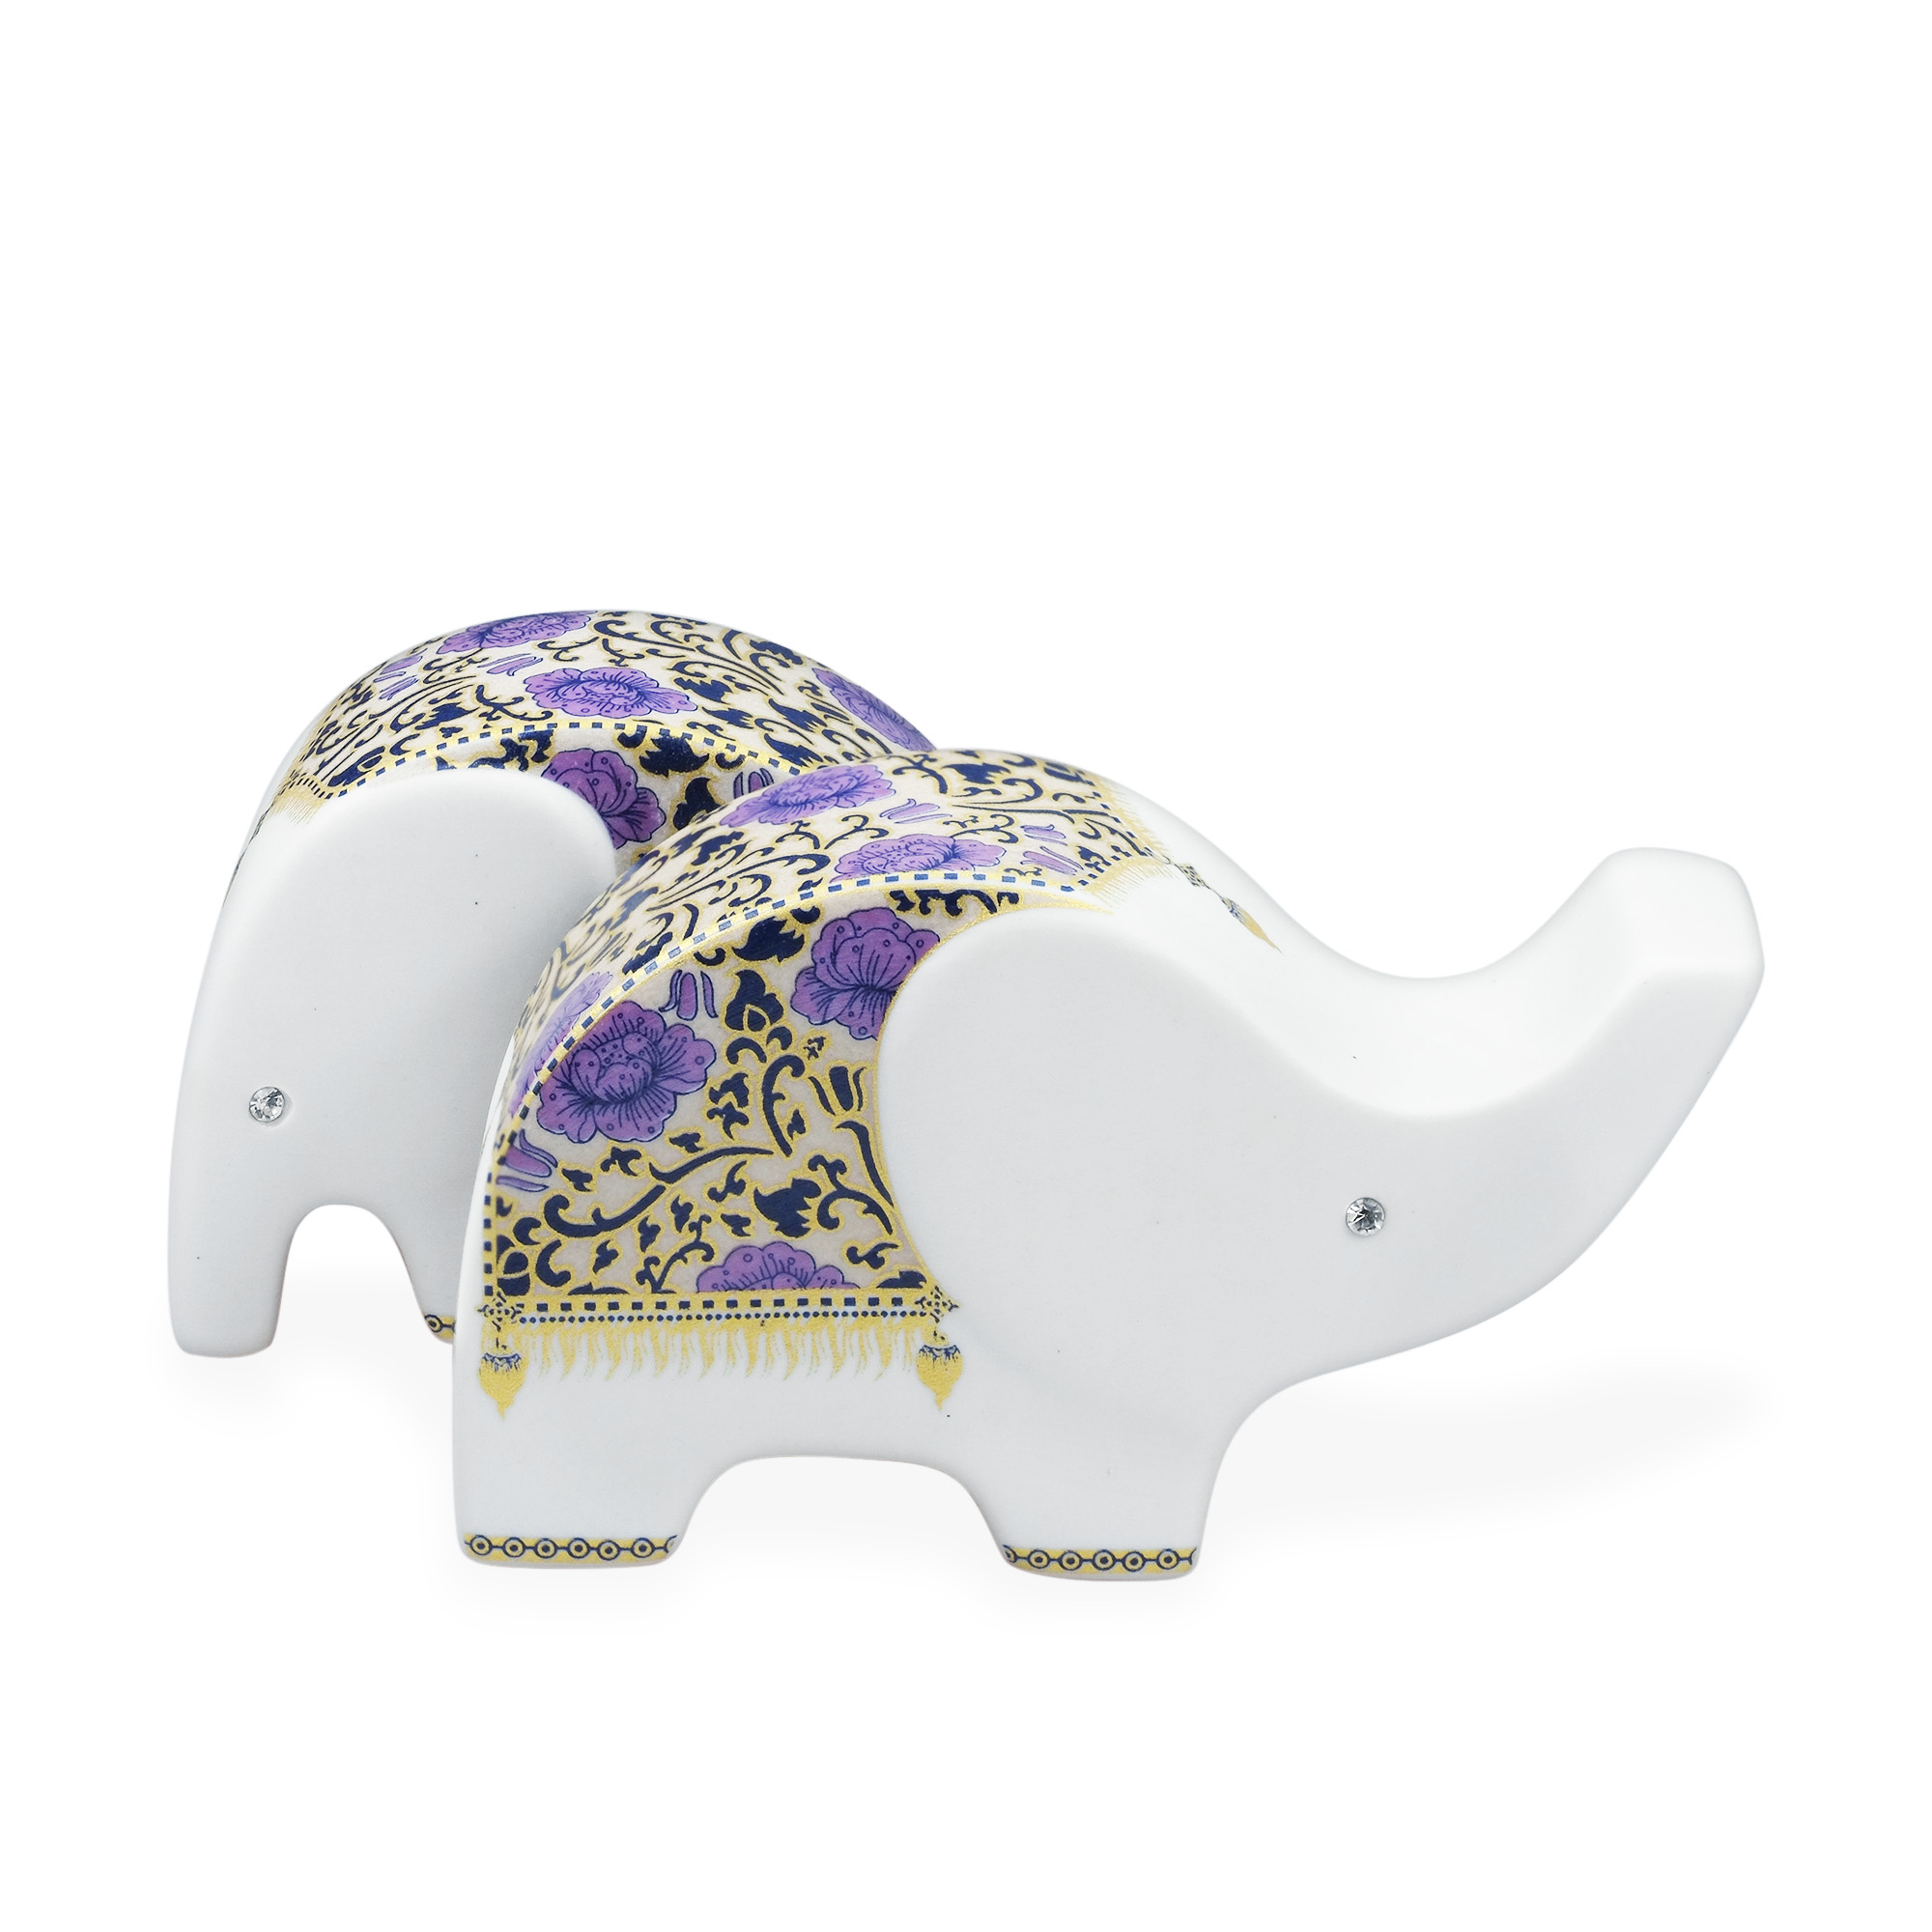 This Beautiful Salt U0026 Pepper Shaker Set Pays Homage To The Regal Elephant.  In Thailand, This Amazing Animal Is Considered Very Important To The  Culture And ...